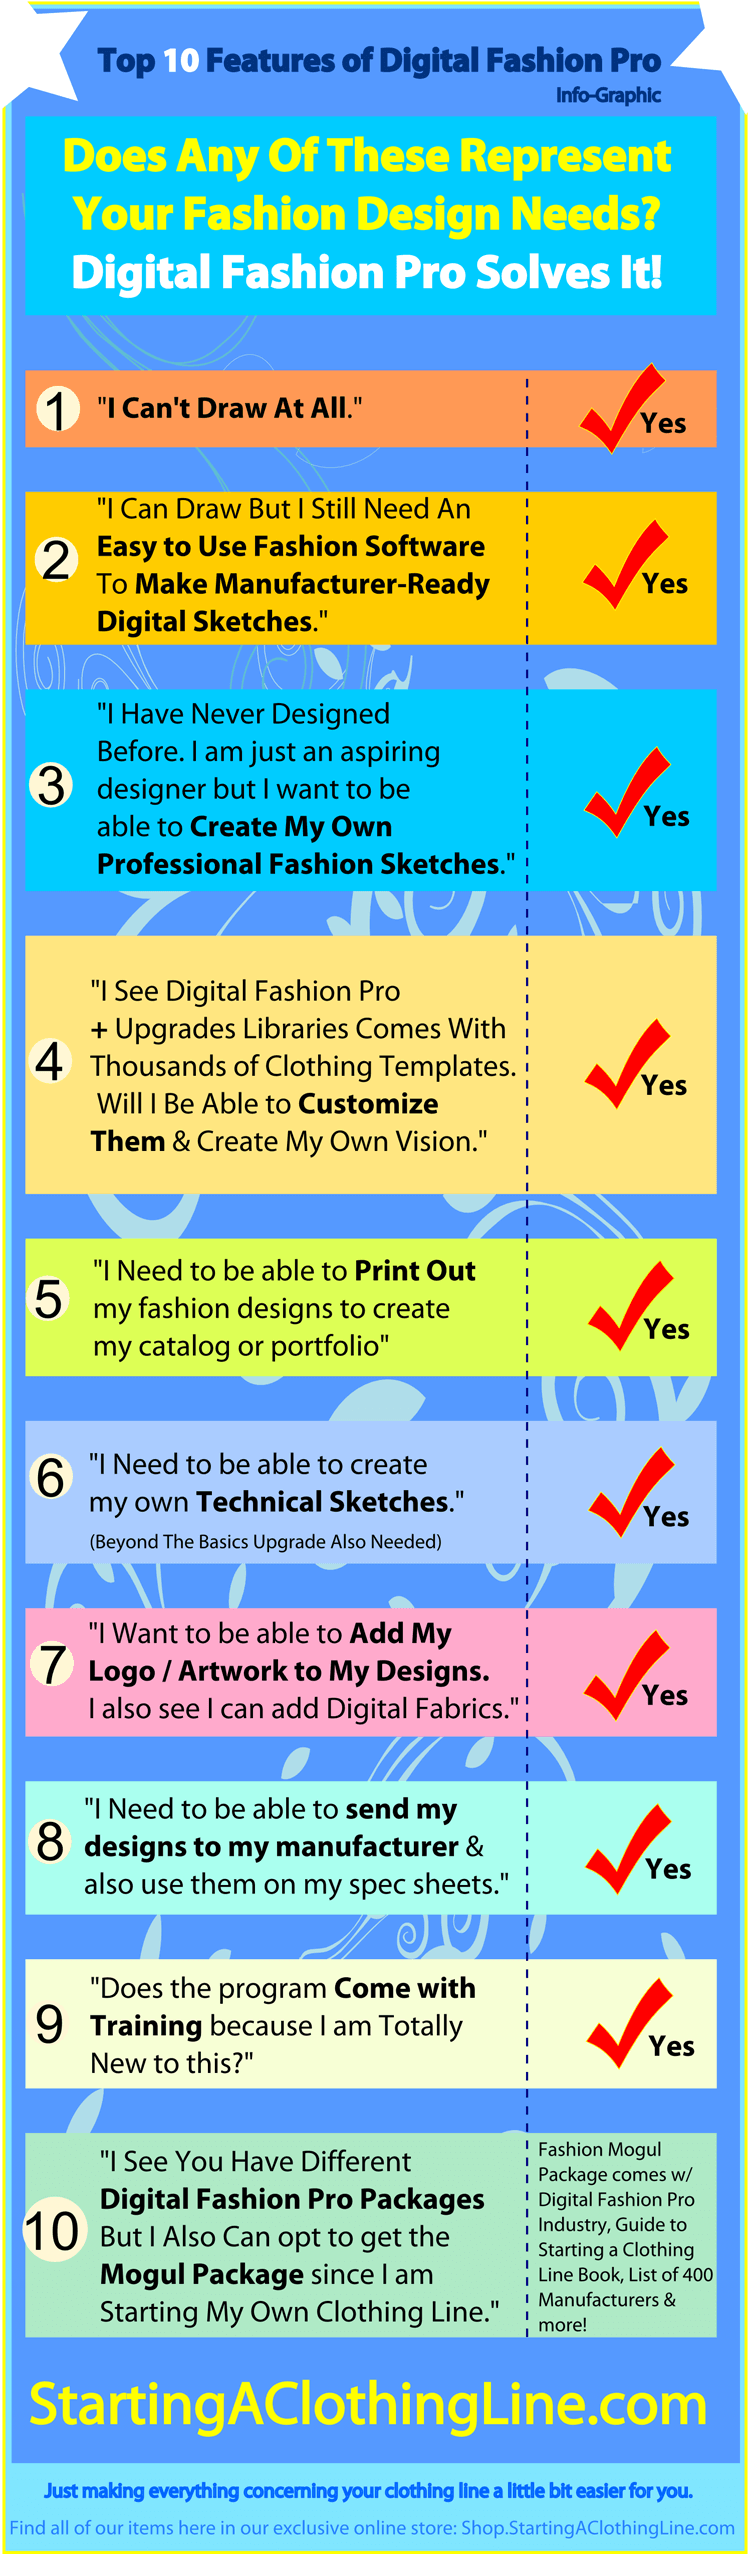 Digital Fashion Pro Free Trial - Infographic - free download